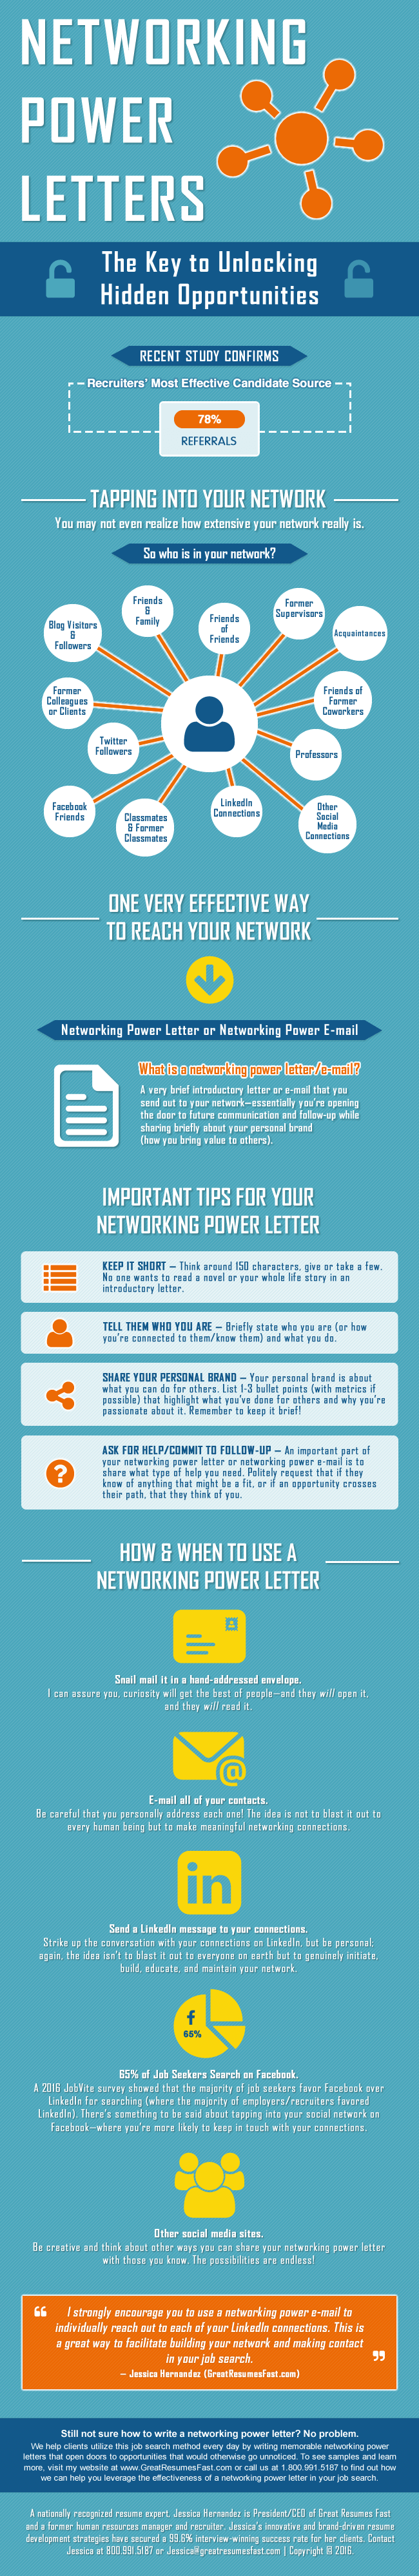 Infographic Networking Power Letters The Key To Unlocking Hidden